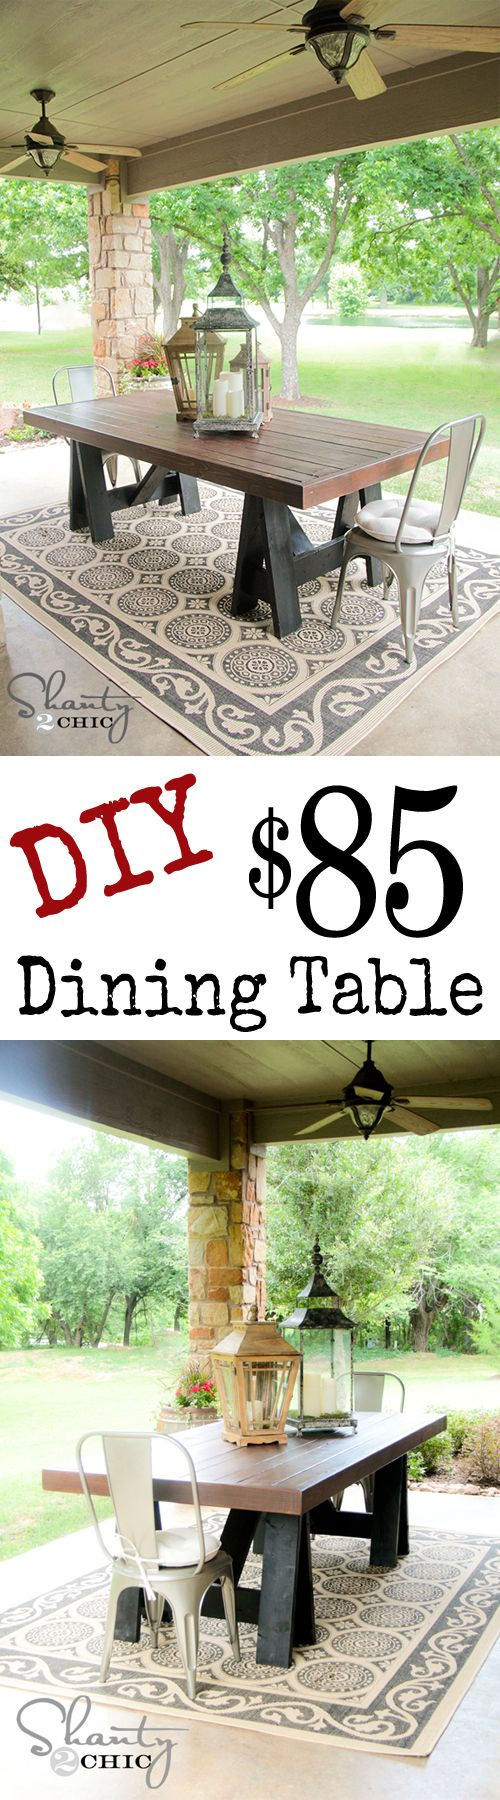 DIY Pottery Barn Dining Table!  LOVE! @ShanTil Yell-2-Chic.com - Have to try this too . . . if I ever get adventurous enough . . . (sigh)  not likely, tho!